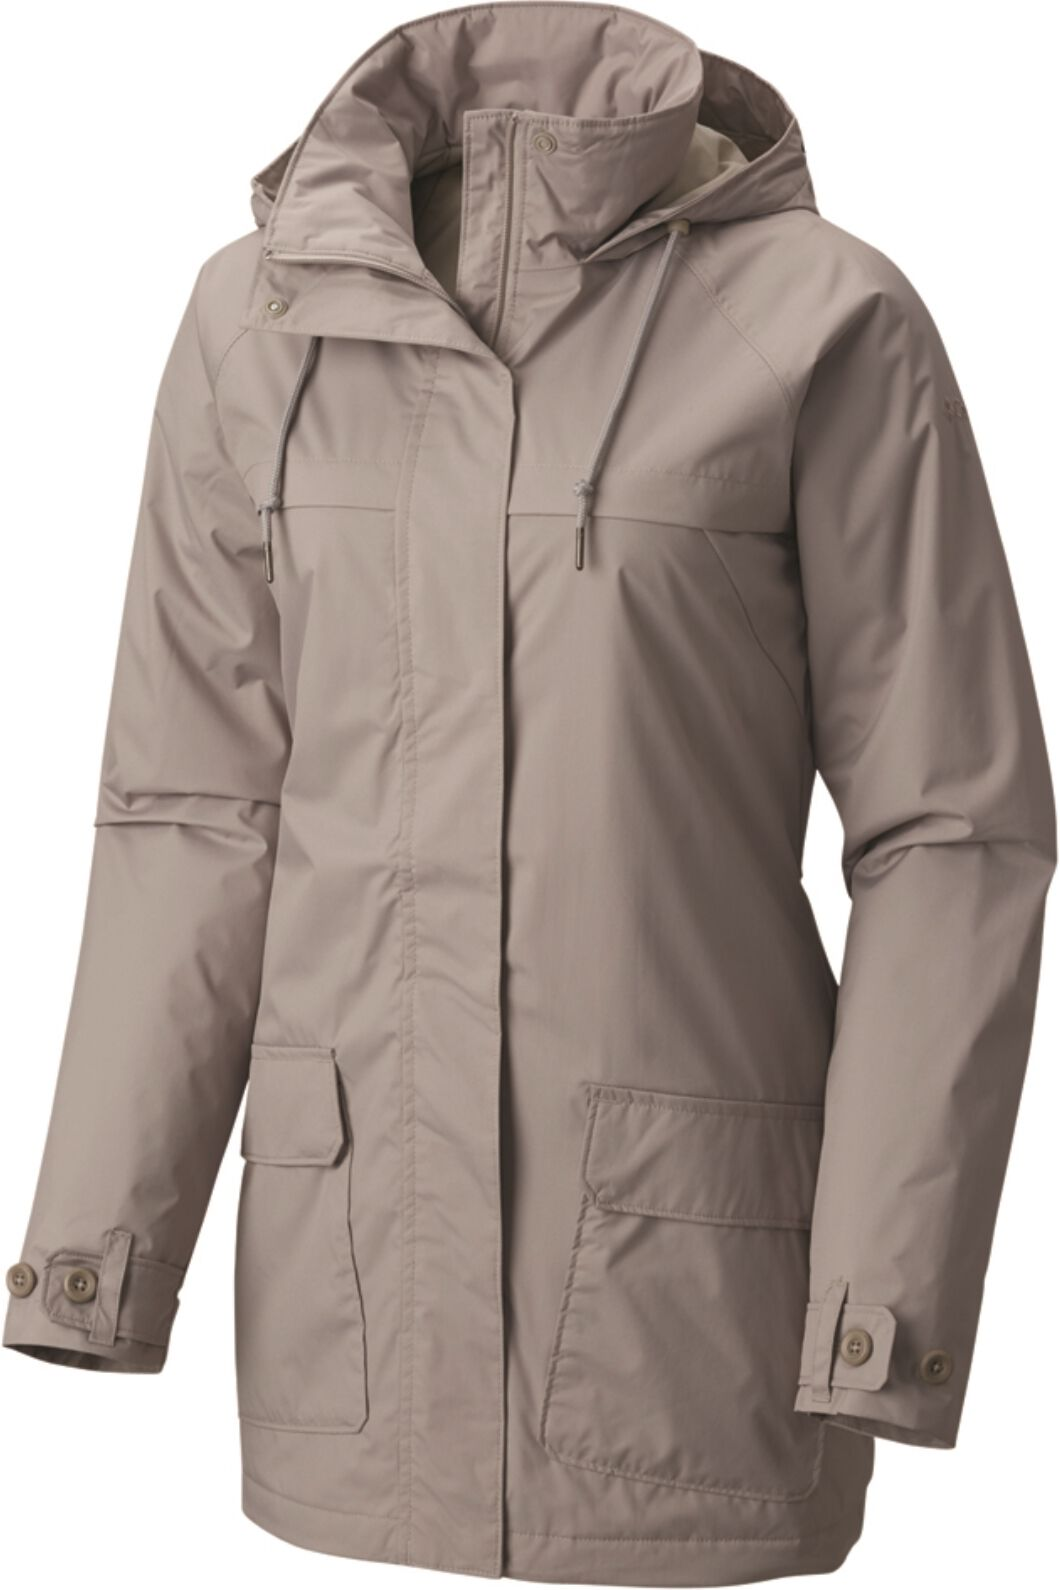 680e2e64bf1 Columbia Women s Lookout Crest Jacket Flint